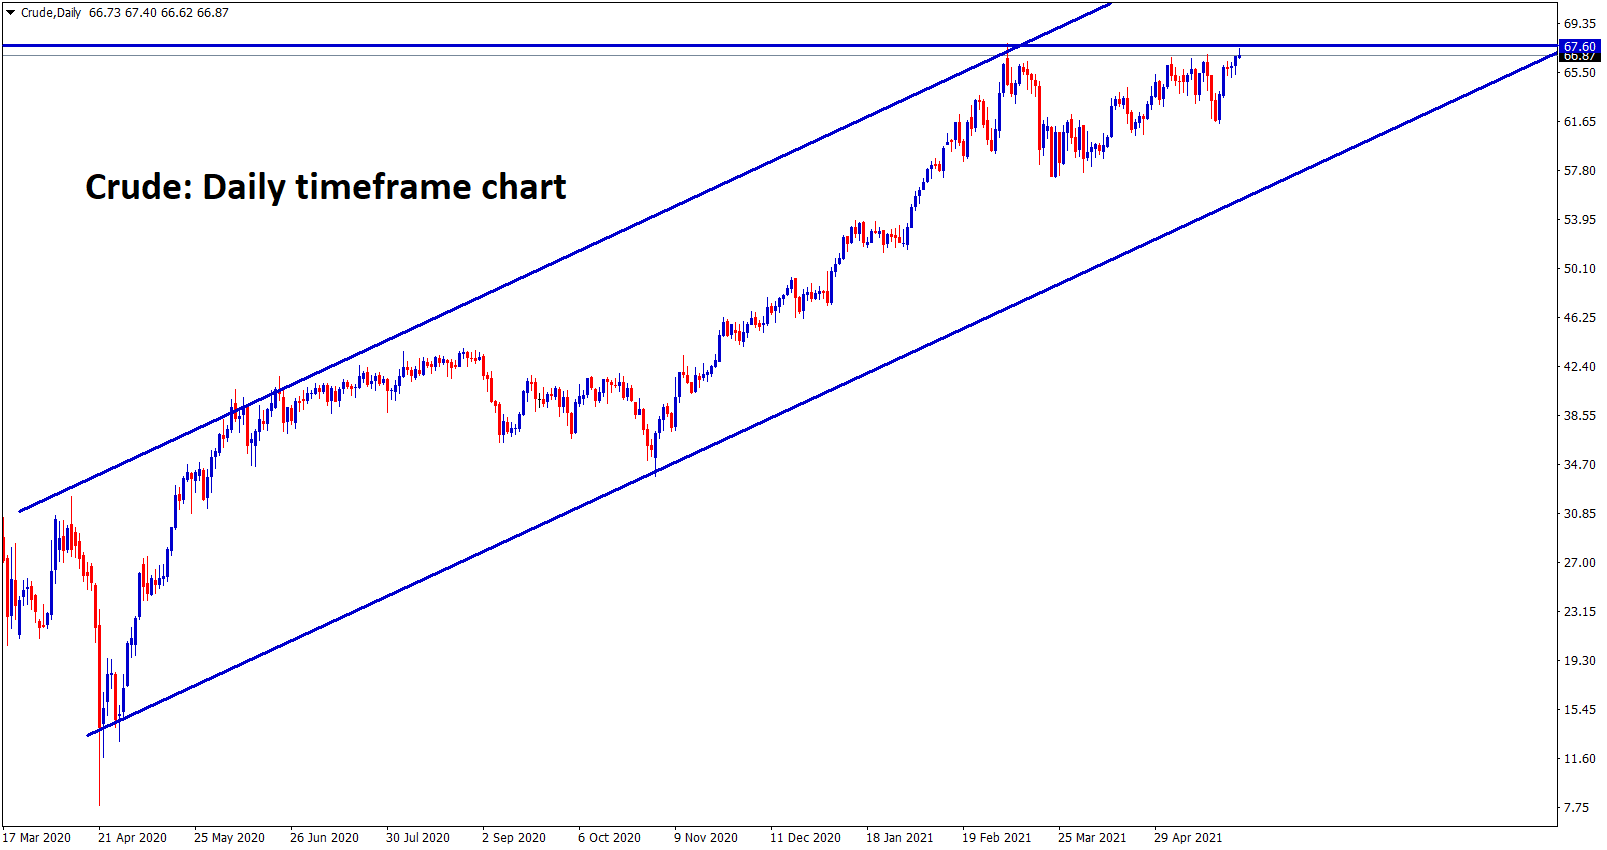 Crude oil reached the 67 resistance zone